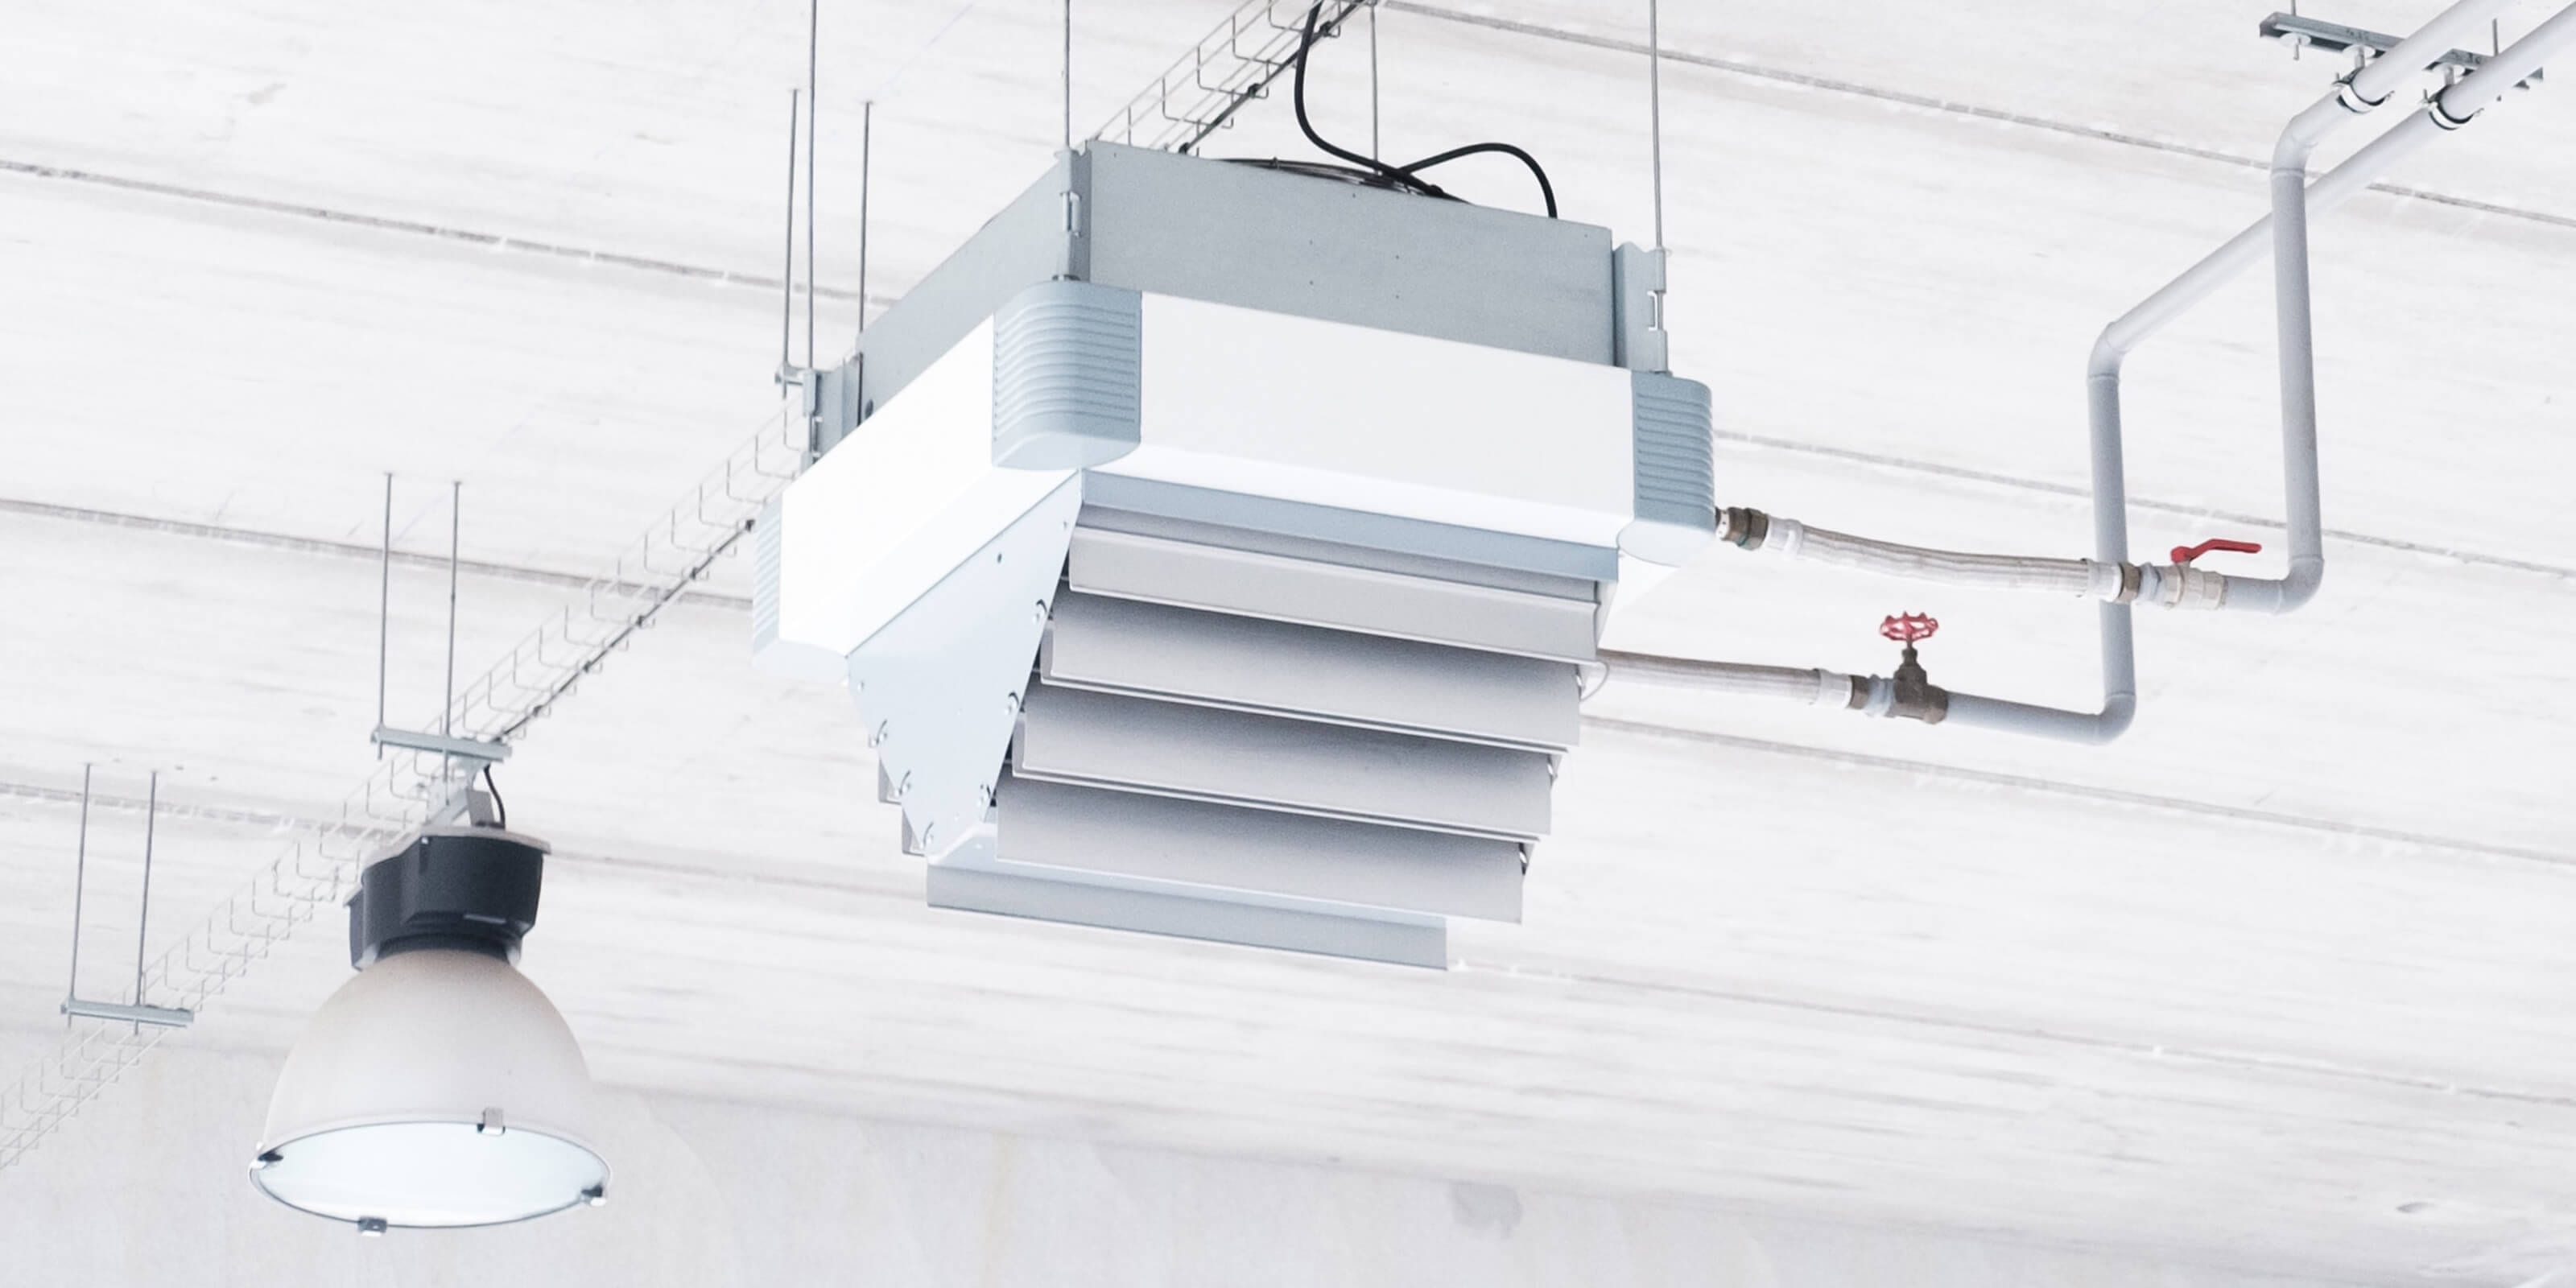 air conditioning unit on ceiling